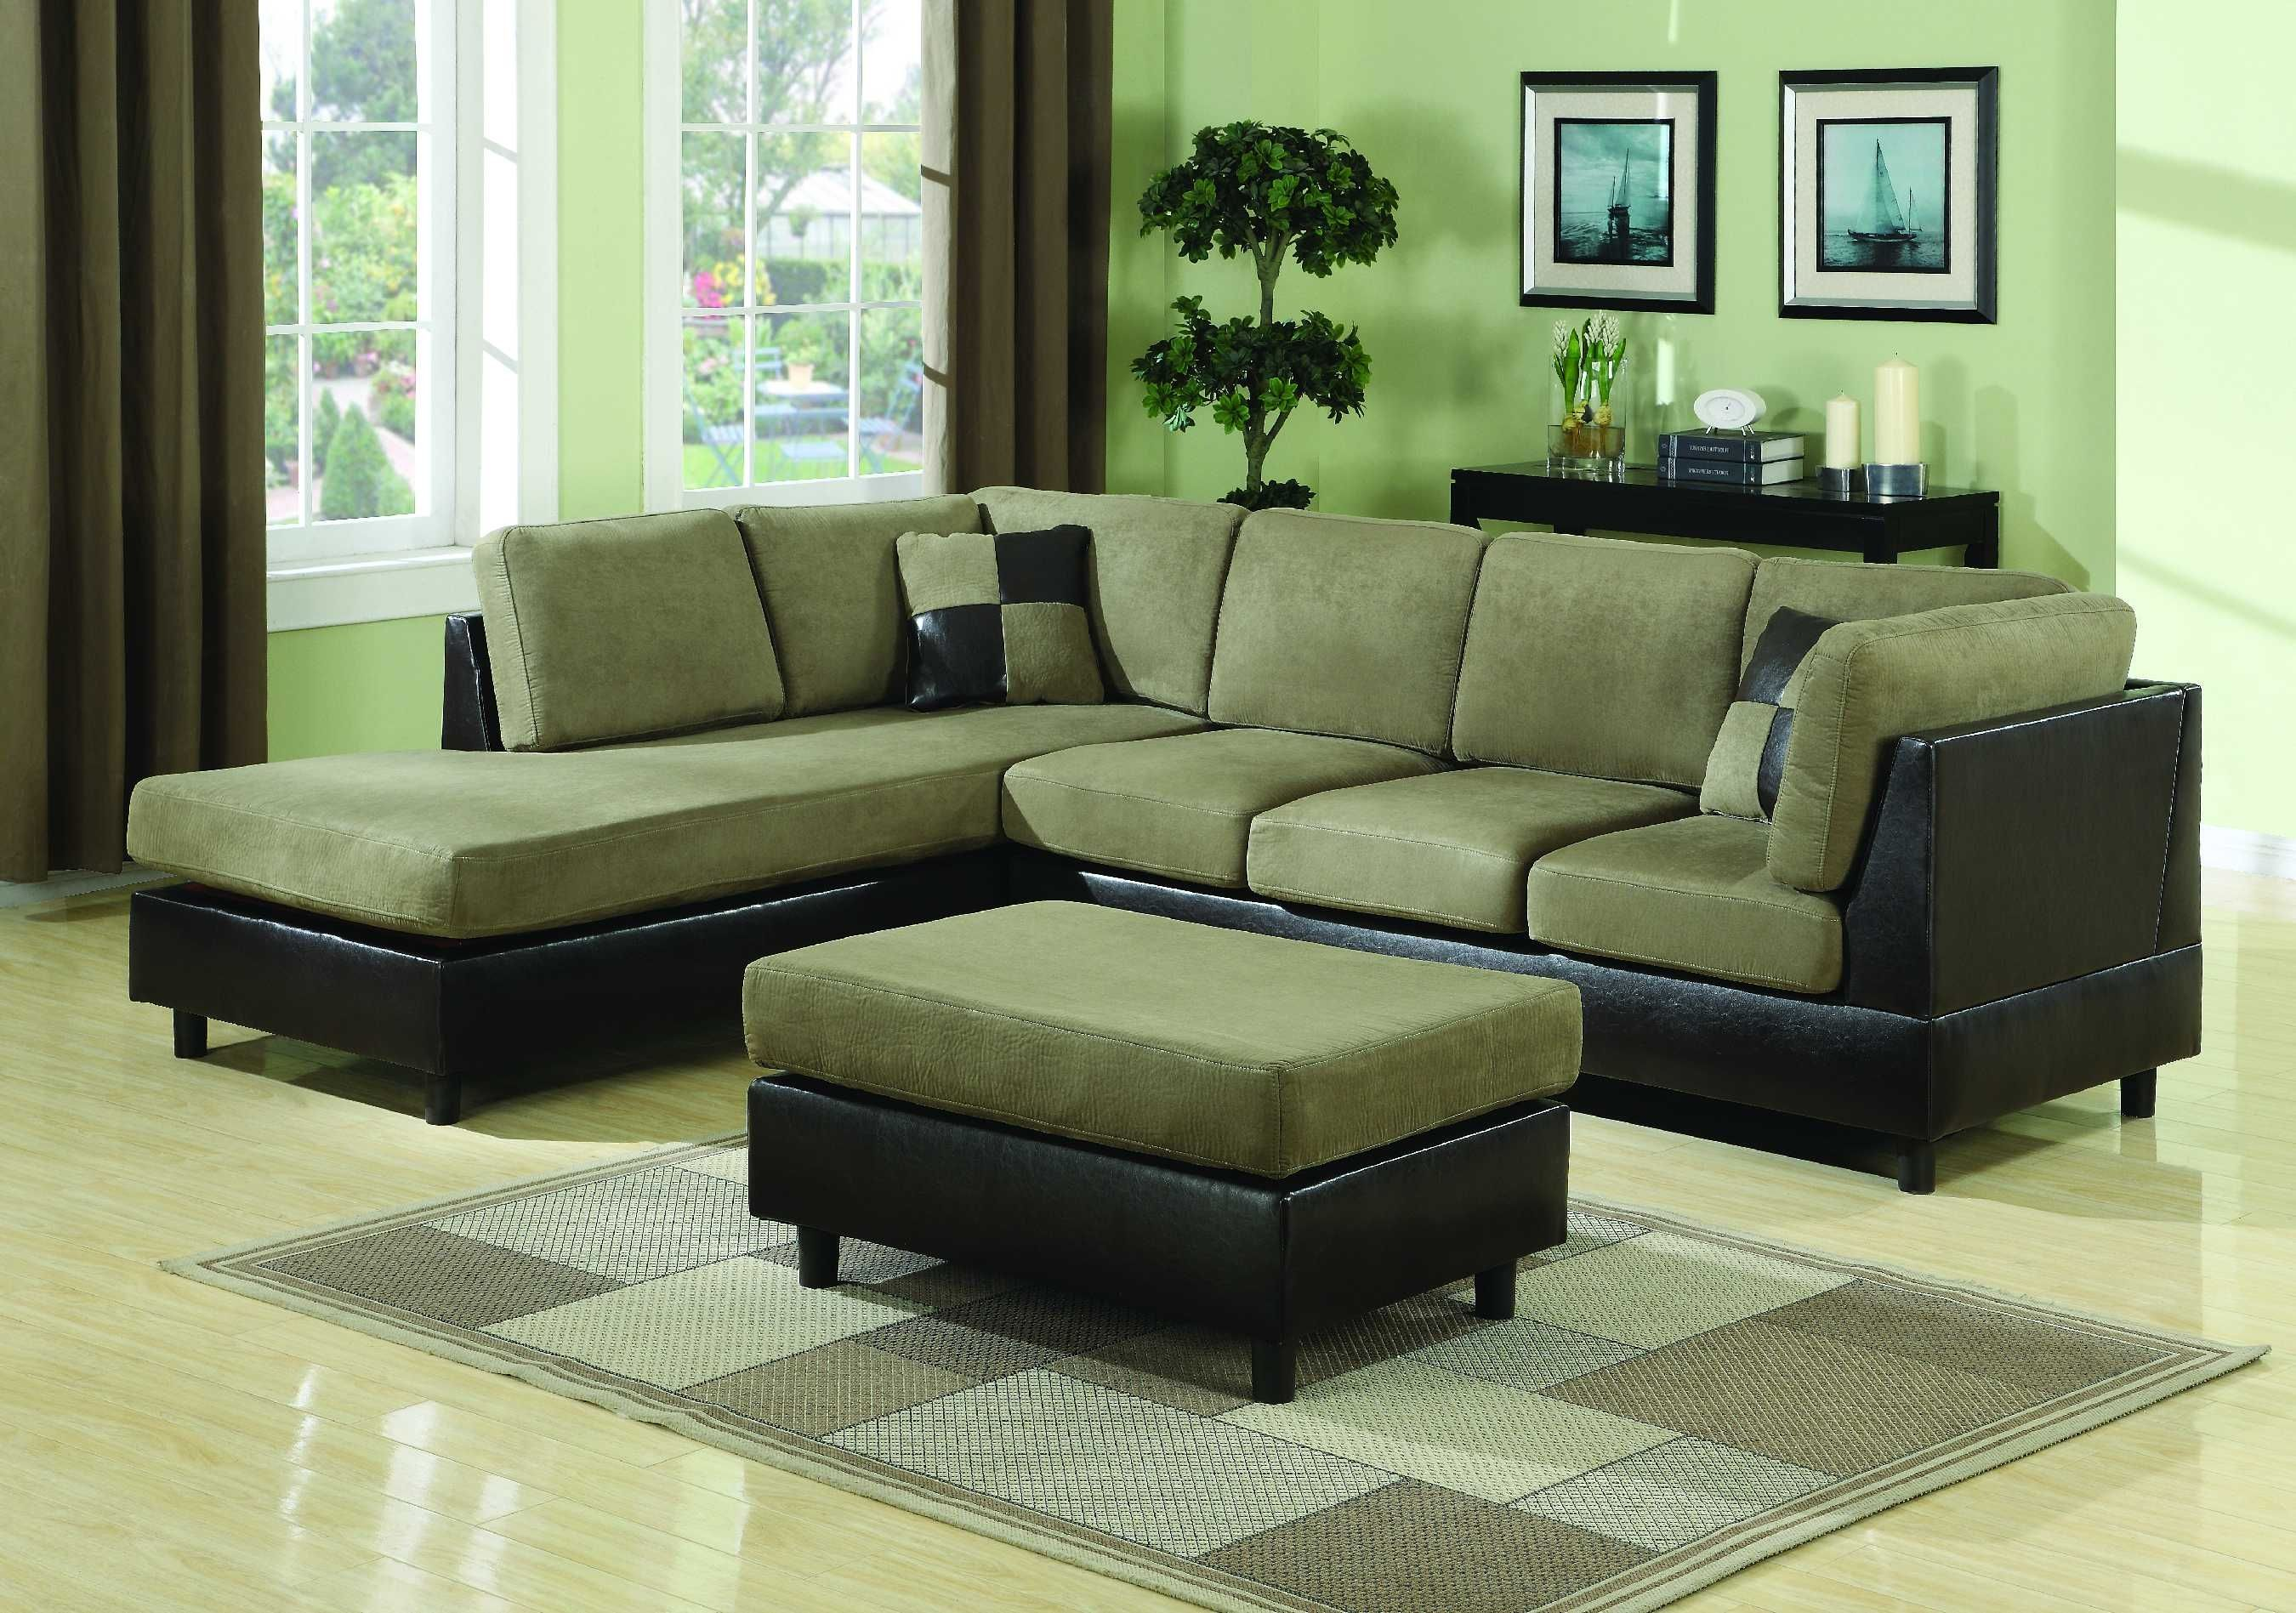 Modern Style Couches southwestern-style-sage-green-sofa-decorating-ideas-zuo-modern